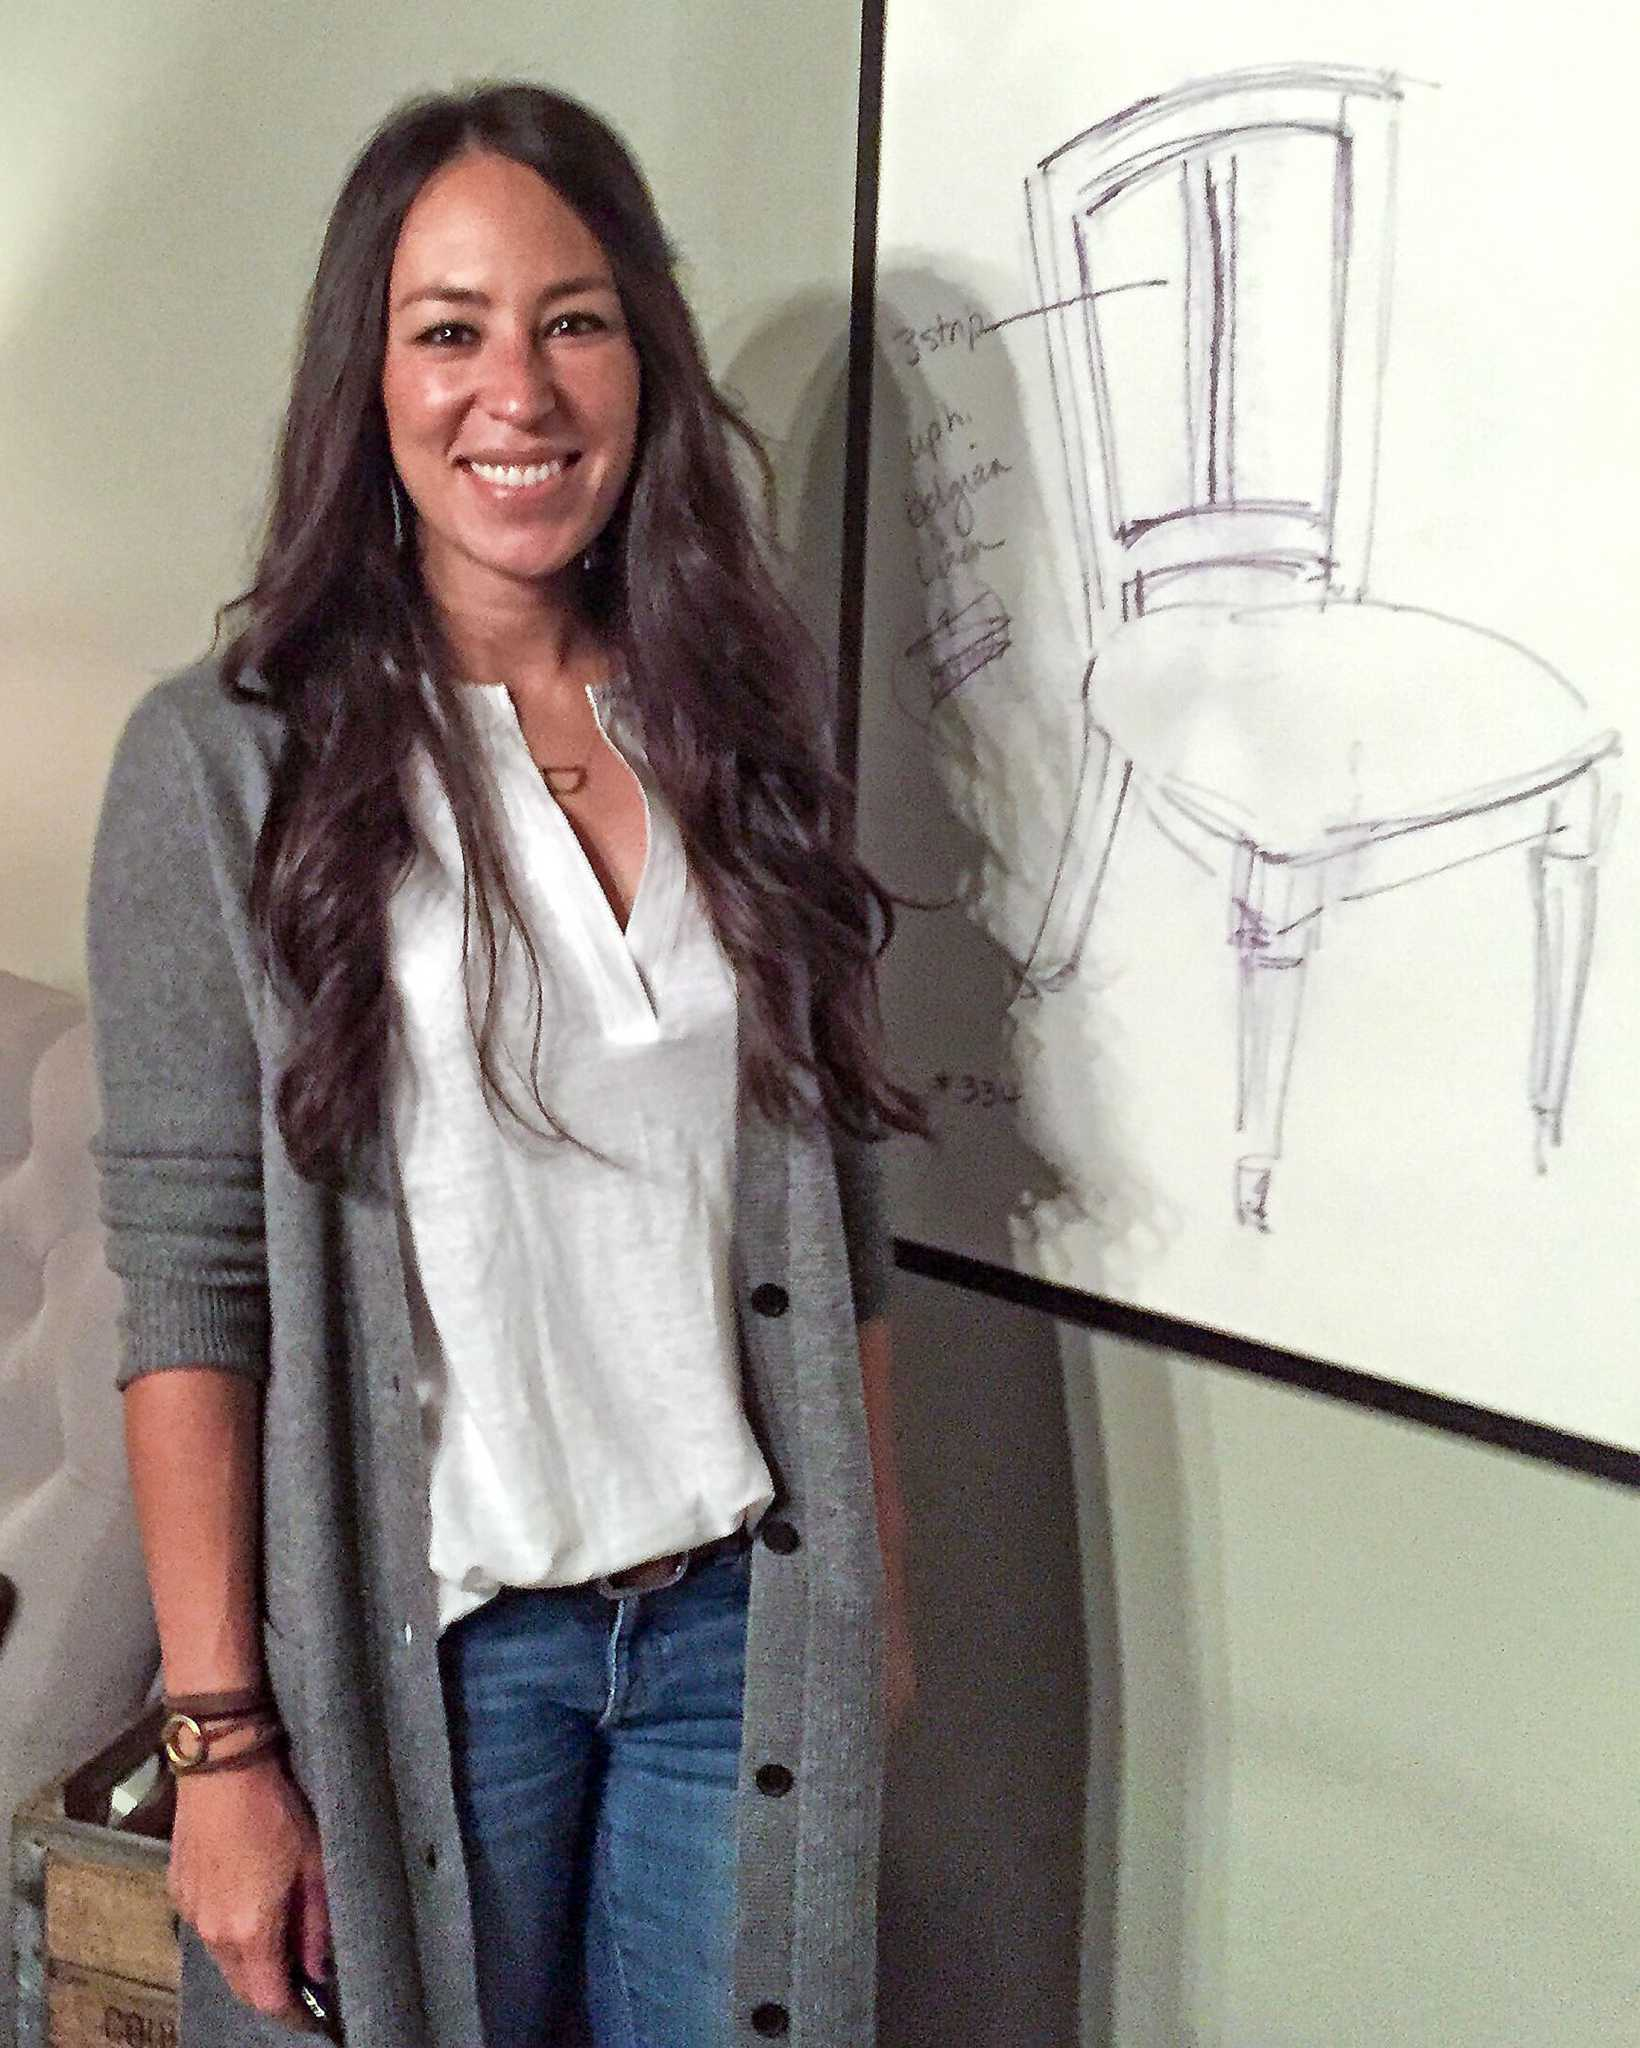 Designs By Joanna Gaines Of Hgtv Fixer Upper Owner Of: HGTV's 'Fixer Upper' Host Introduces Furniture Line